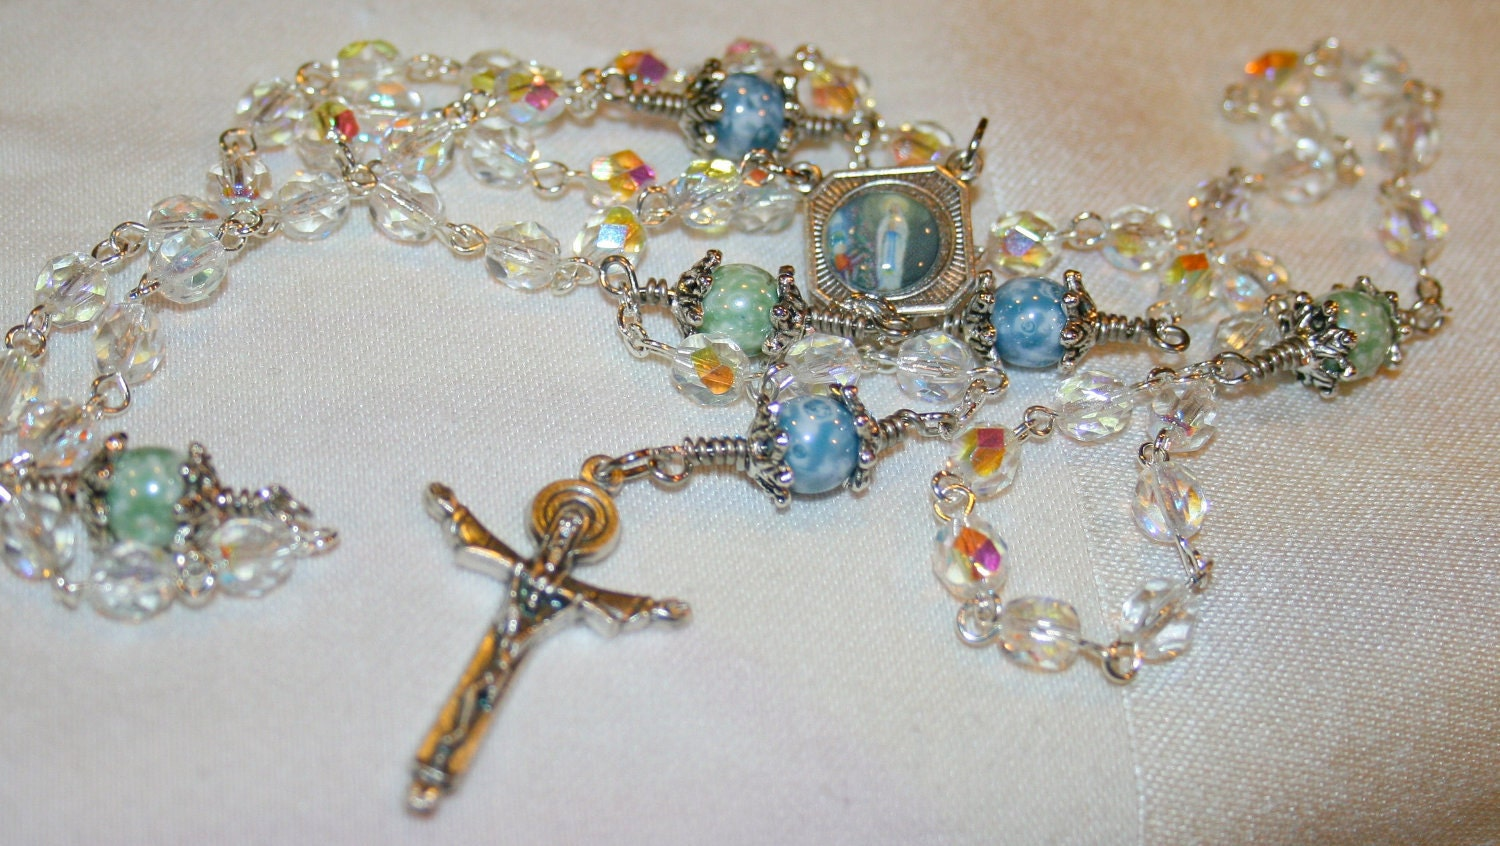 Bead Original: I Won a Beautiful Rosary!